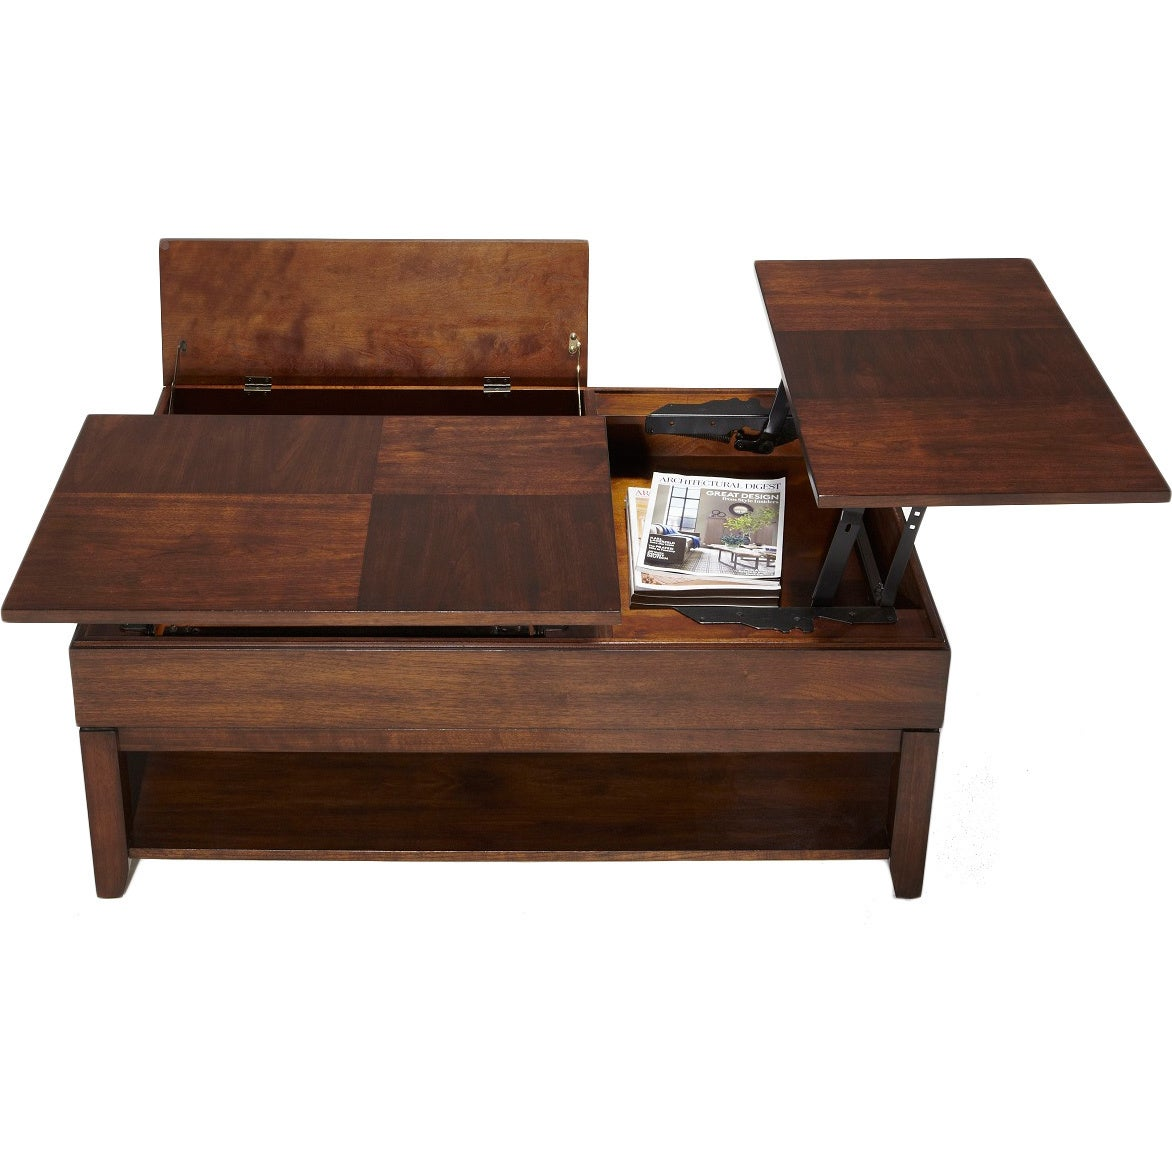 Shop Daytona Regal Walnut Double Lifttop Cocktail Table Free - Double lift top cocktail table